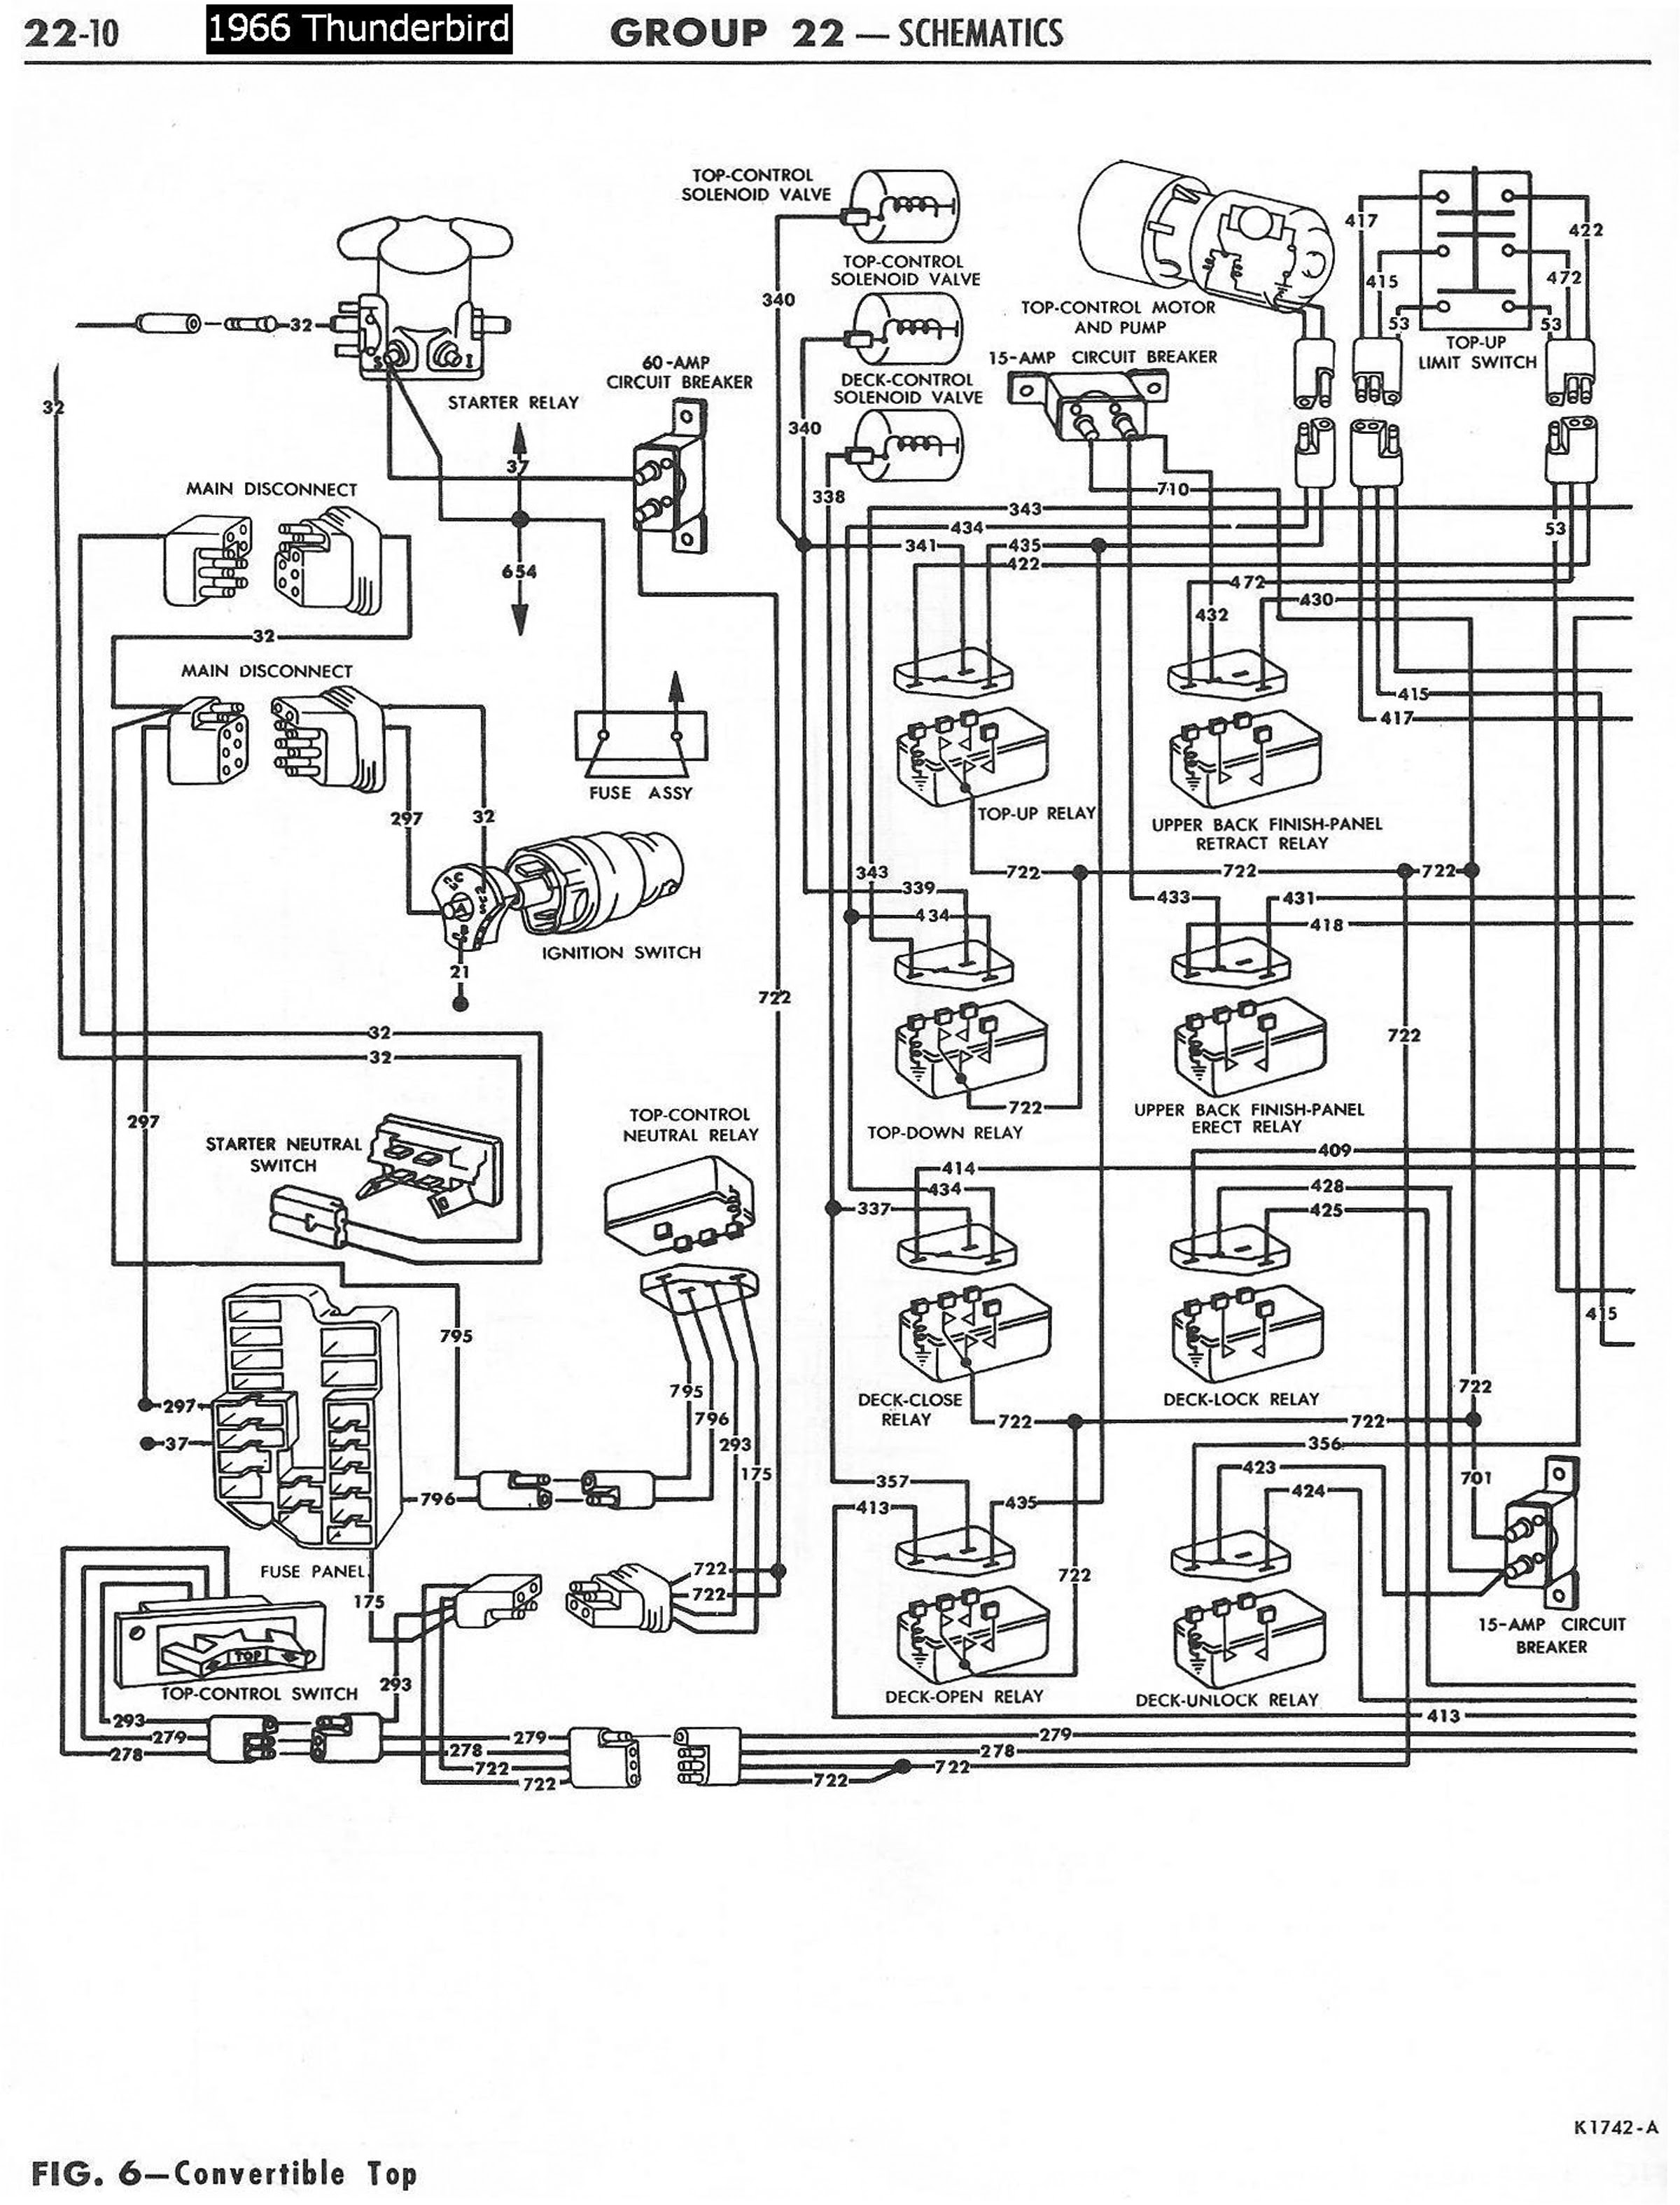 1958 Chevrolet Wiring Diagram